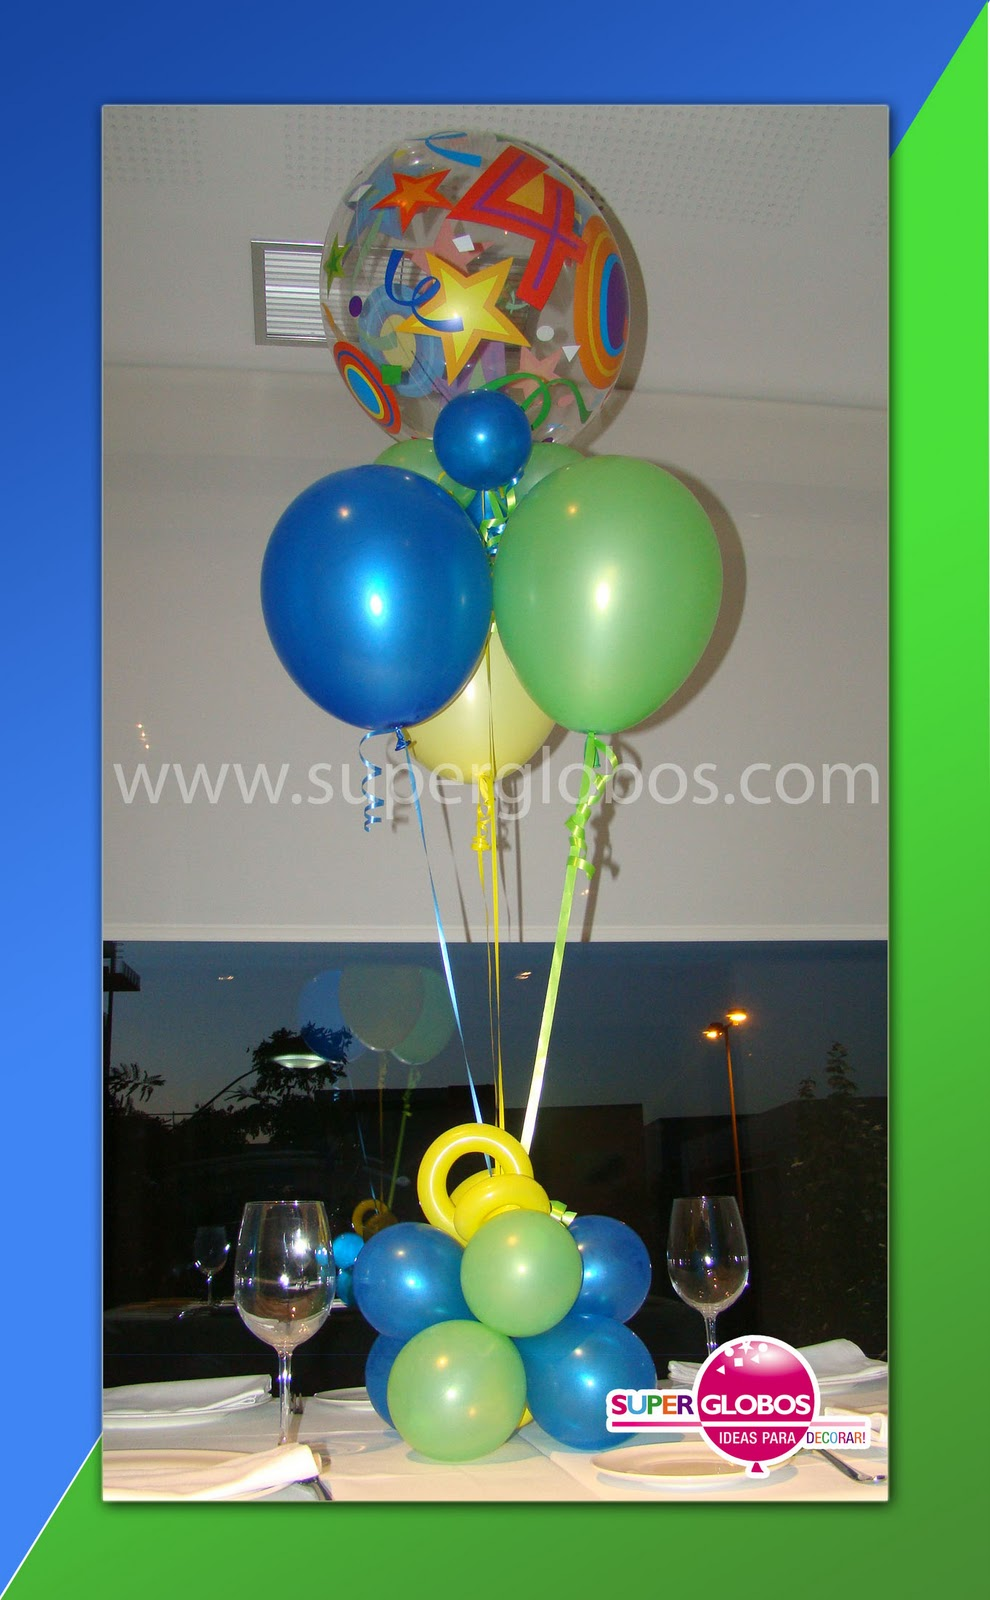 Decoraci n con globos para eventos y fiestas superglobos for Decoraciones para decorar